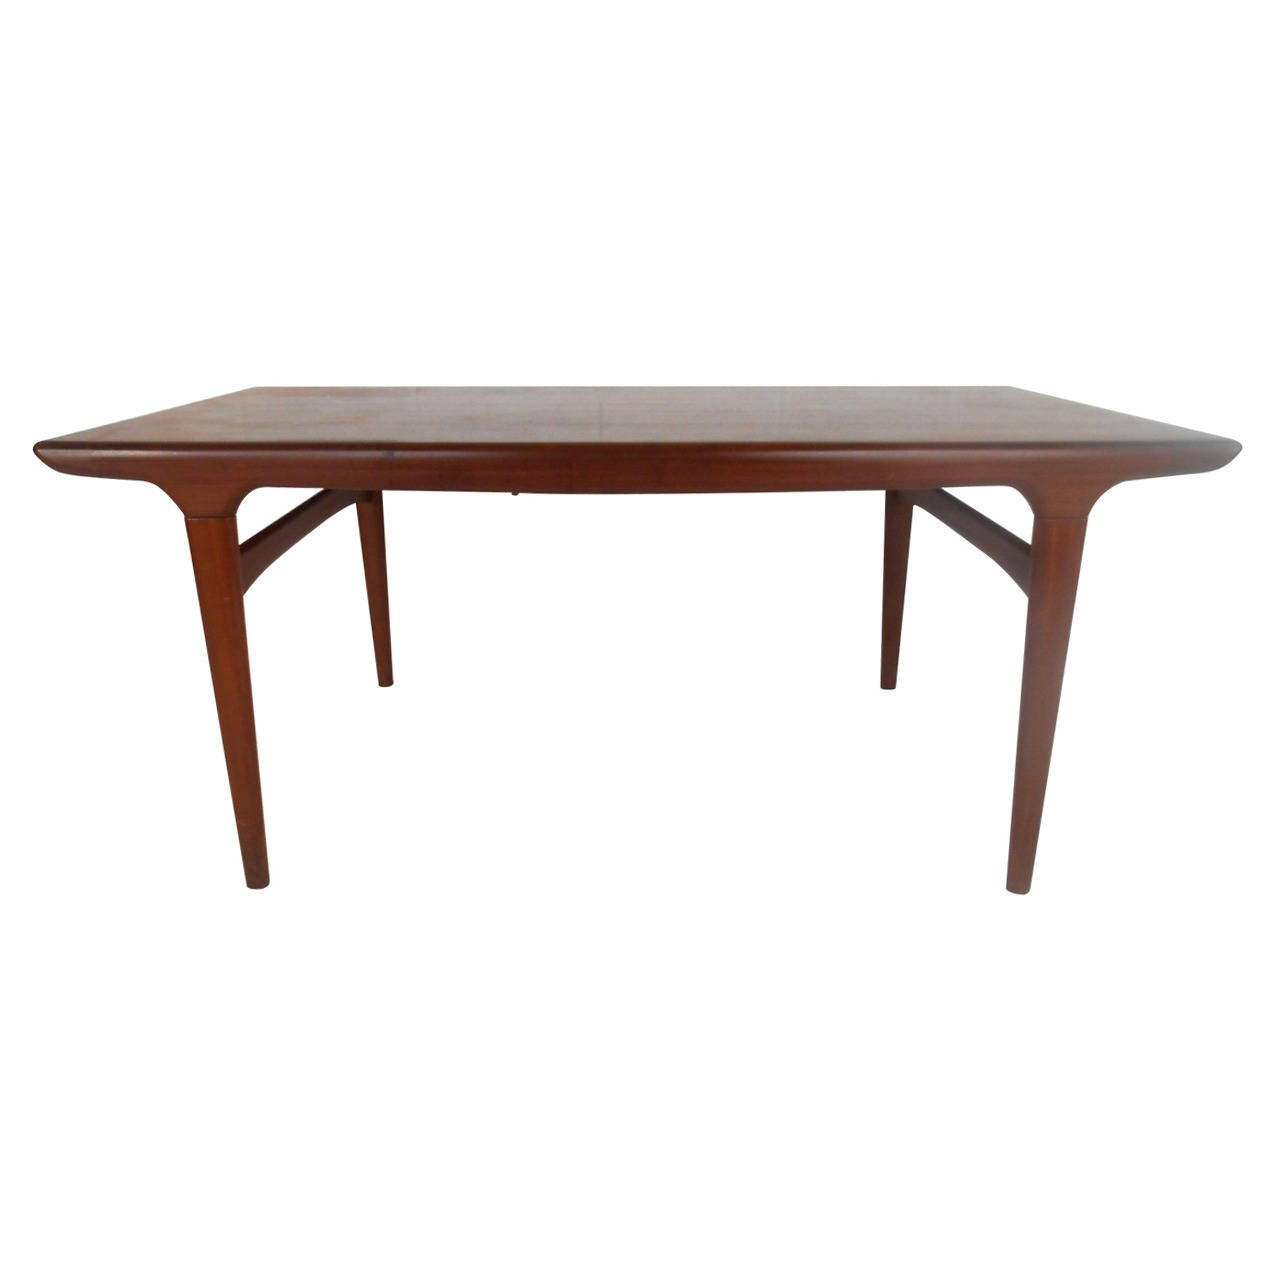 Mid century modern hans wegner style teak draw leaf dining for New style dining table